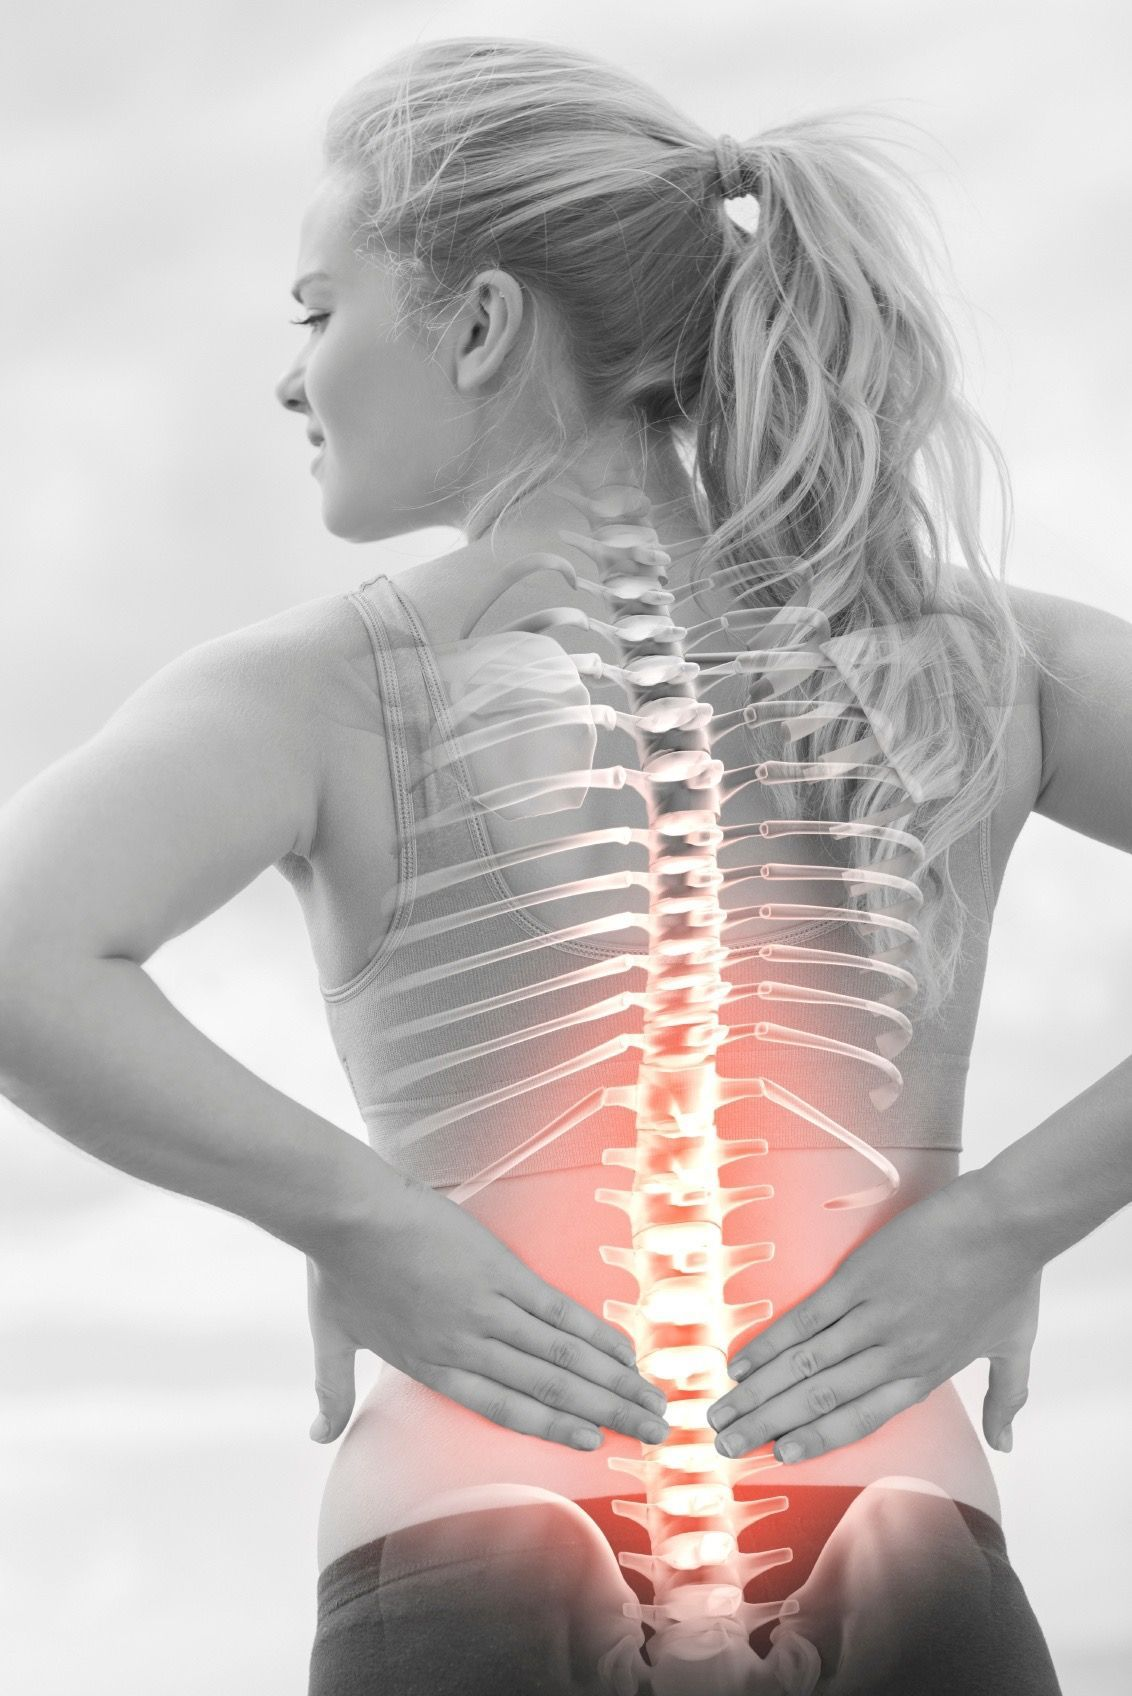 Chiropractor near me in Columbus and surrounding areas